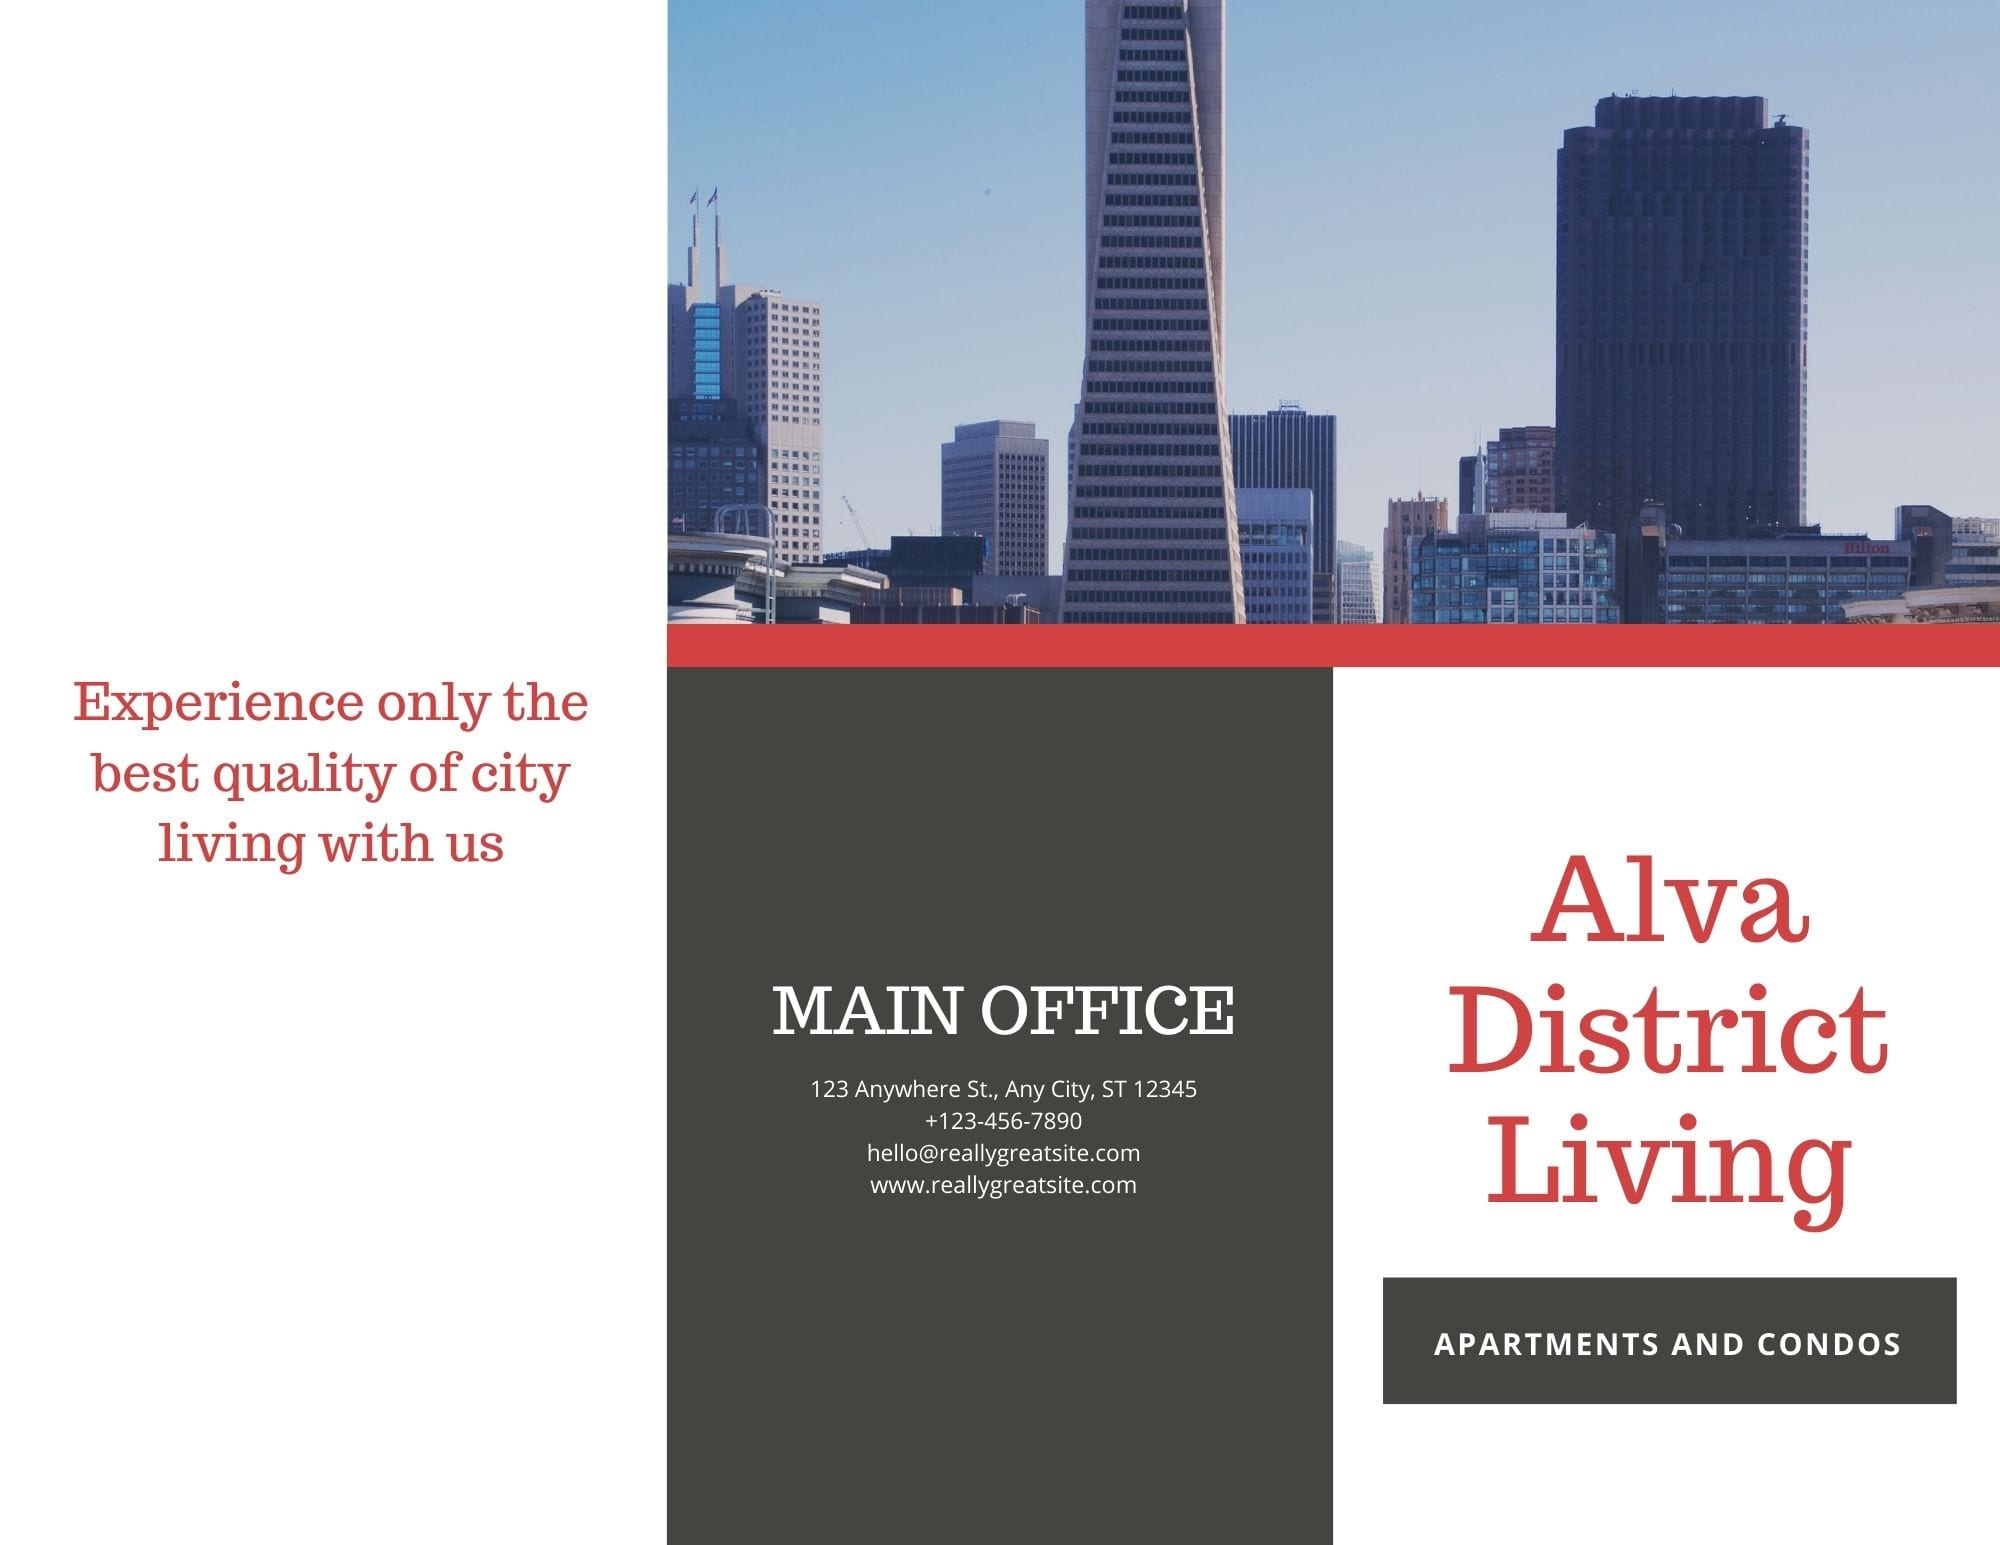 Use Canva to create tri-fold real estate brochures. You can print your brochures right from the Canva platform. Choose the finish, number of copies, if you'd like to include envelopes, and send to the printer. Your brochures will be mailed directly to you.